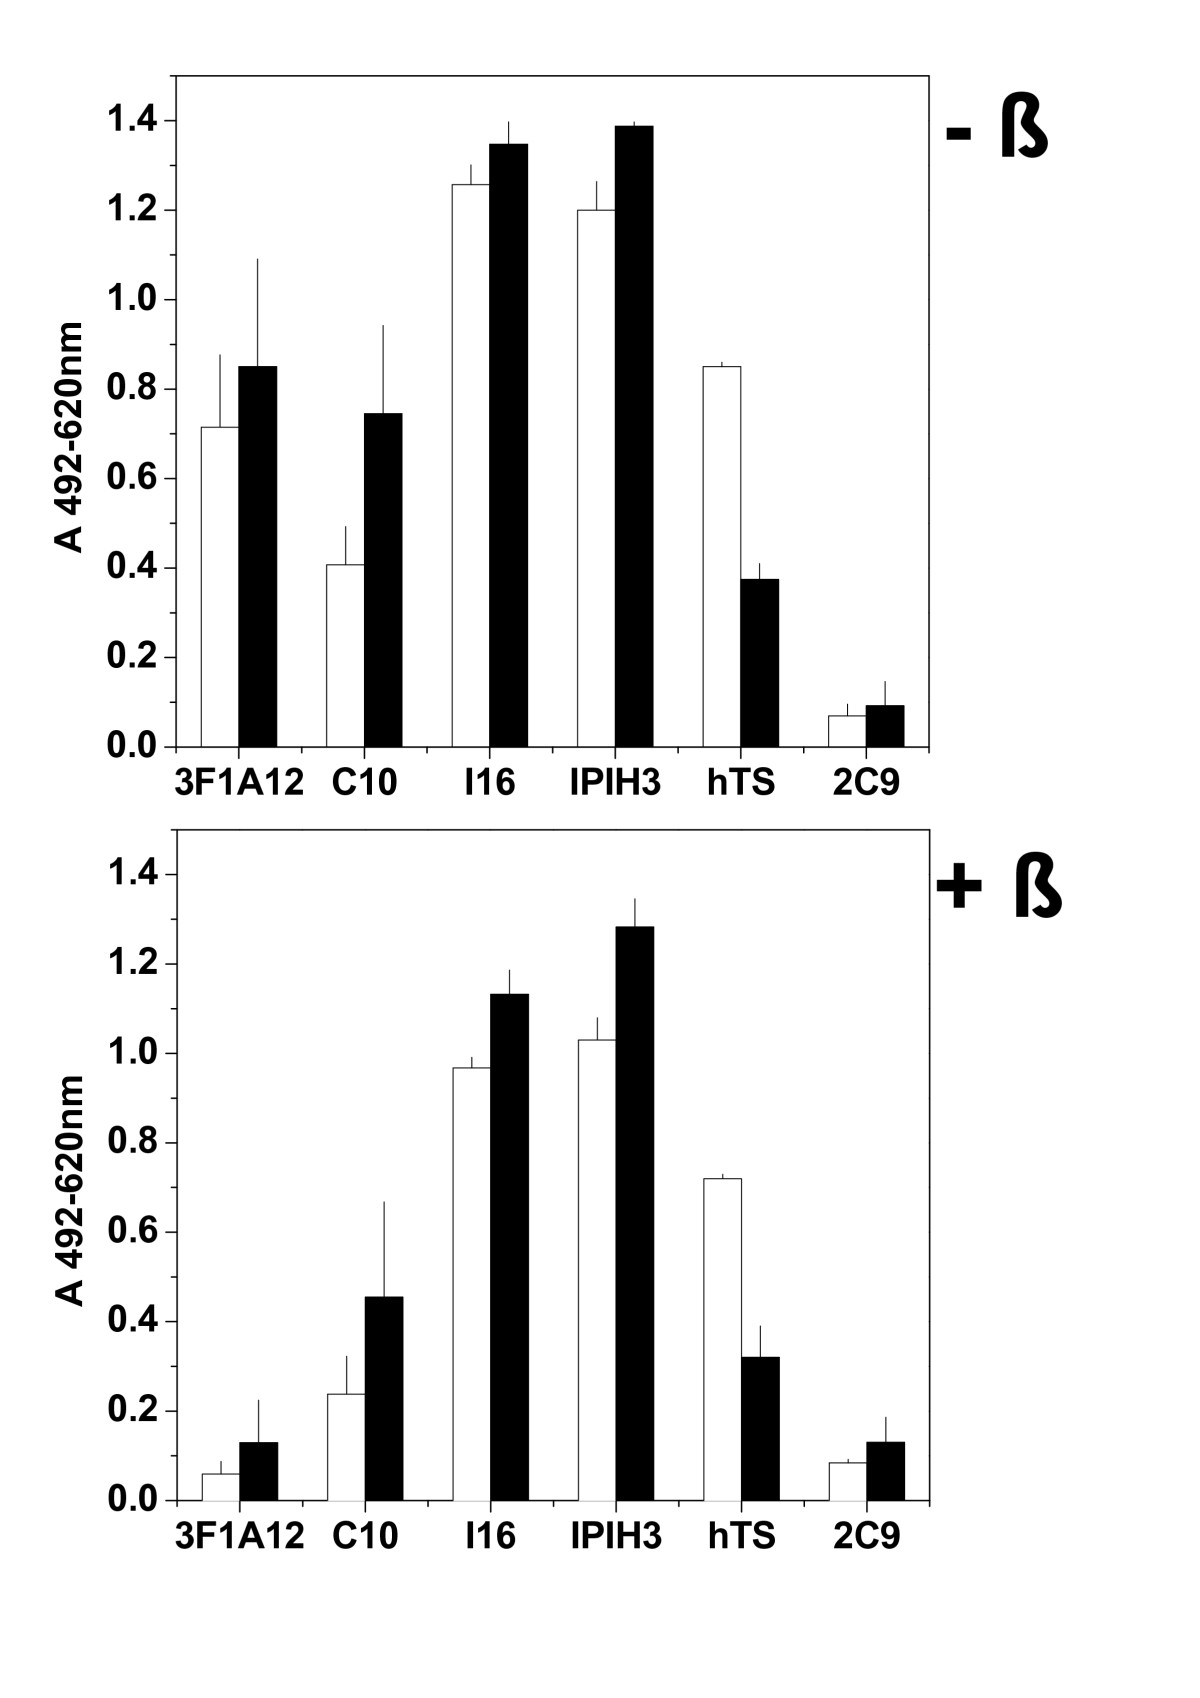 http://static-content.springer.com/image/art%3A10.1186%2F1756-0500-4-210/MediaObjects/13104_2011_Article_976_Fig3_HTML.jpg